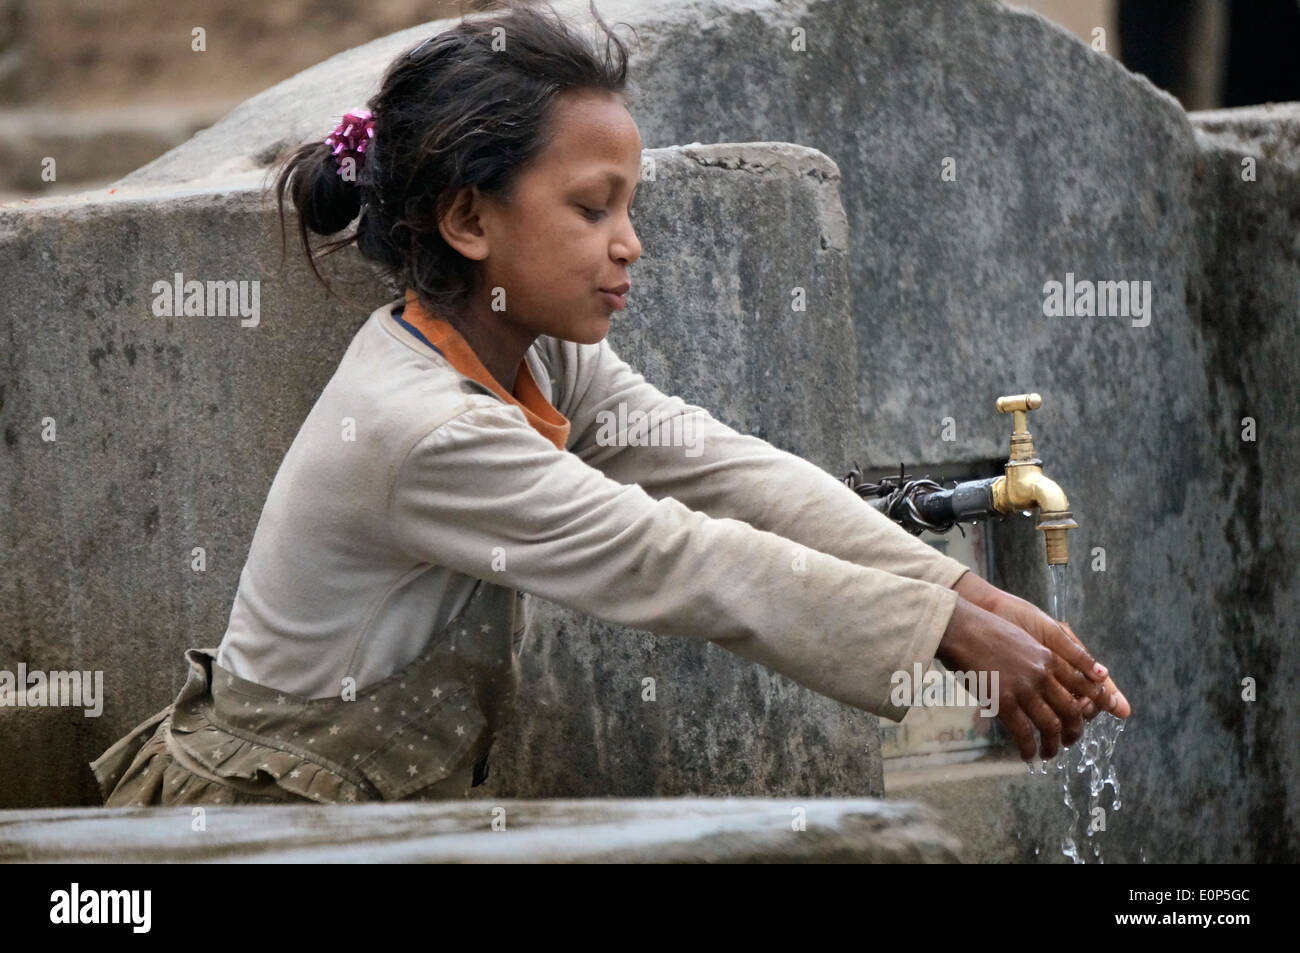 Young girl is washing hands at water faucet - Stock Image